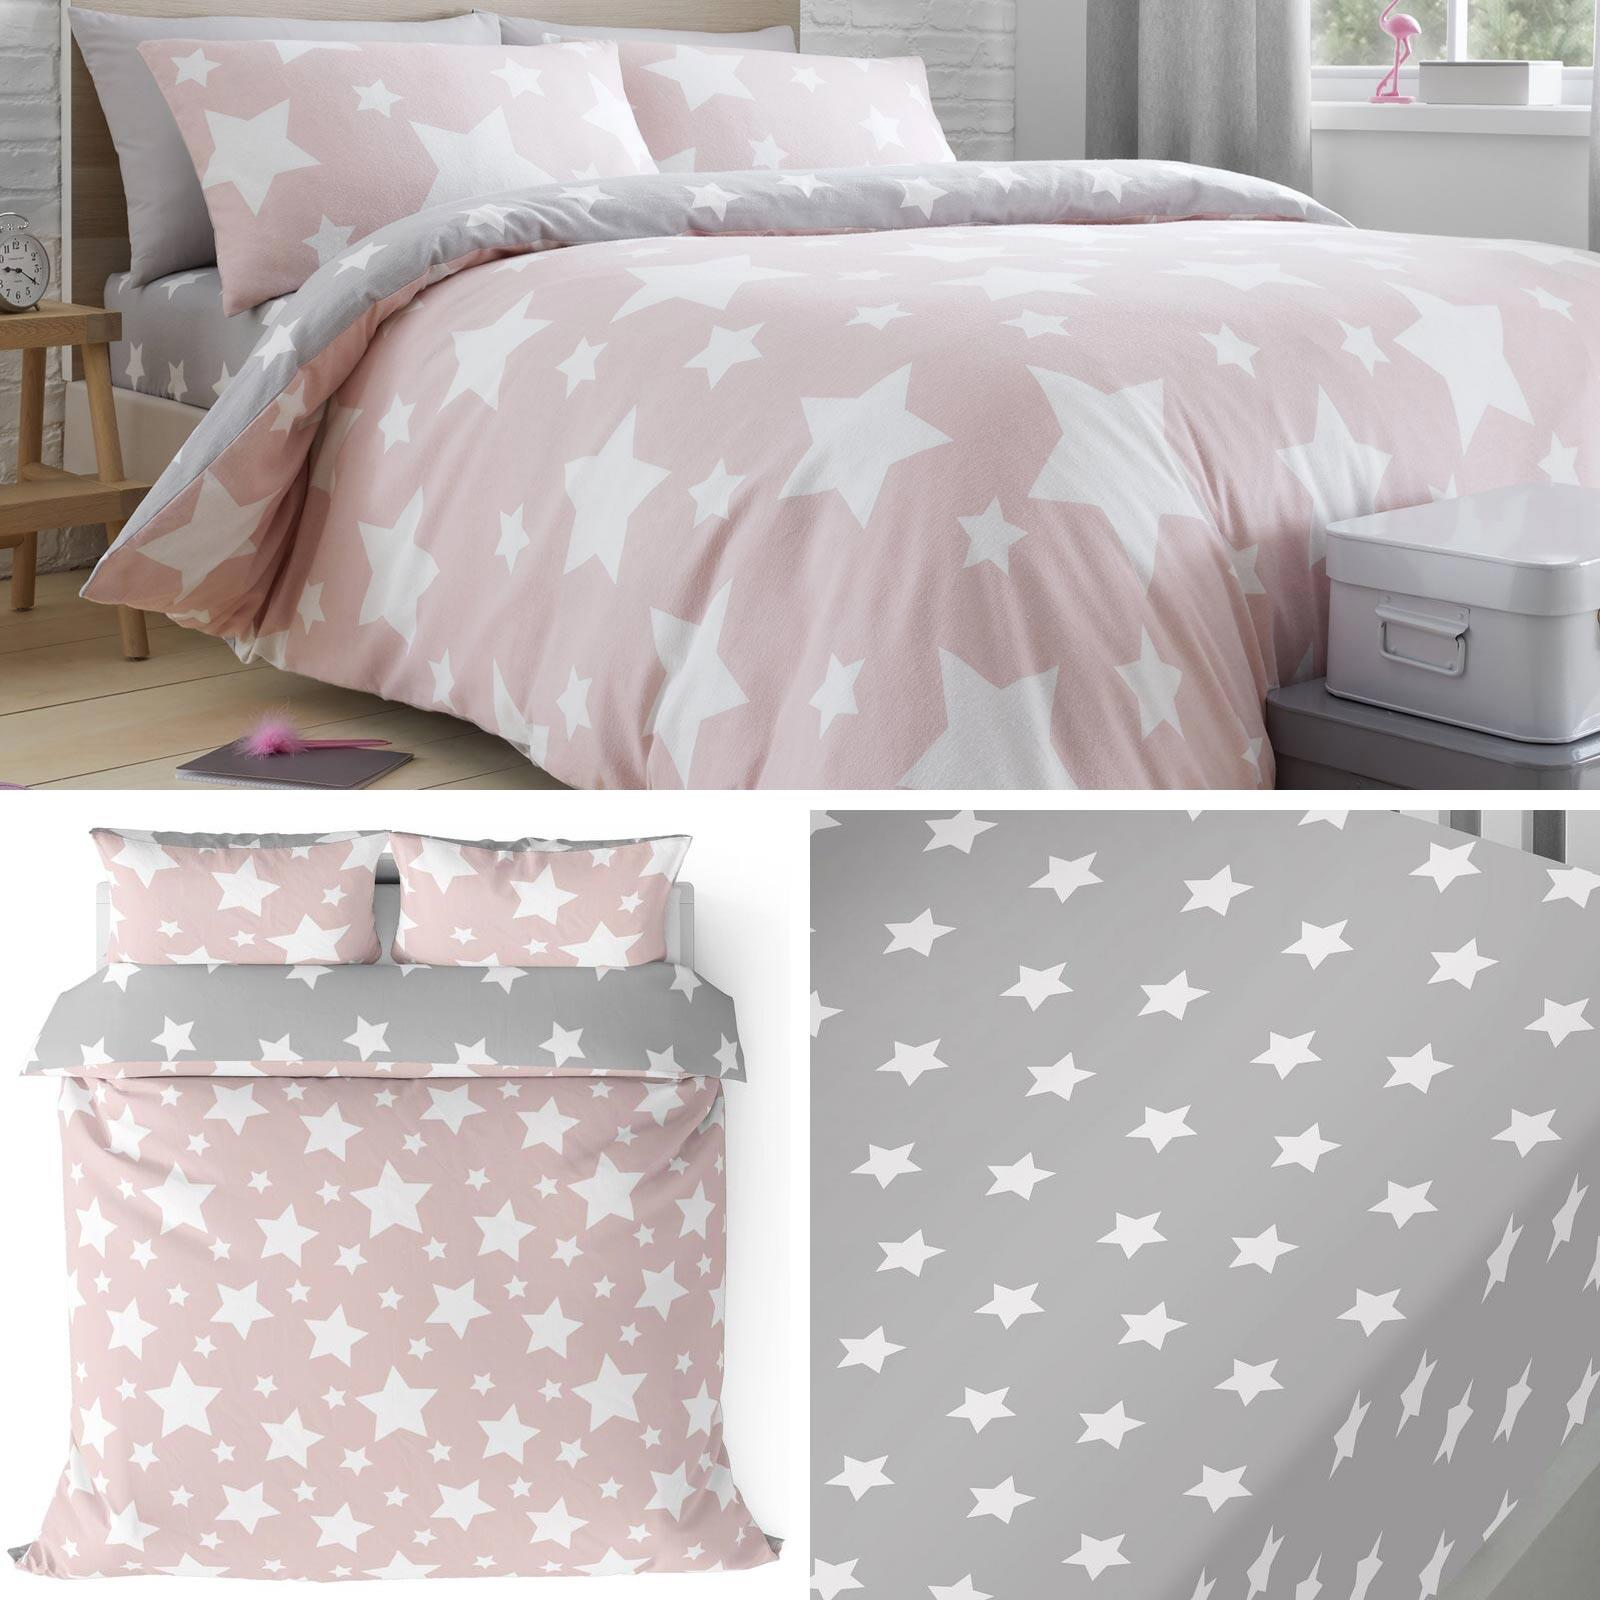 Pink Duvet Covers Flannelette 100 Brushed Cotton Stars Quilt